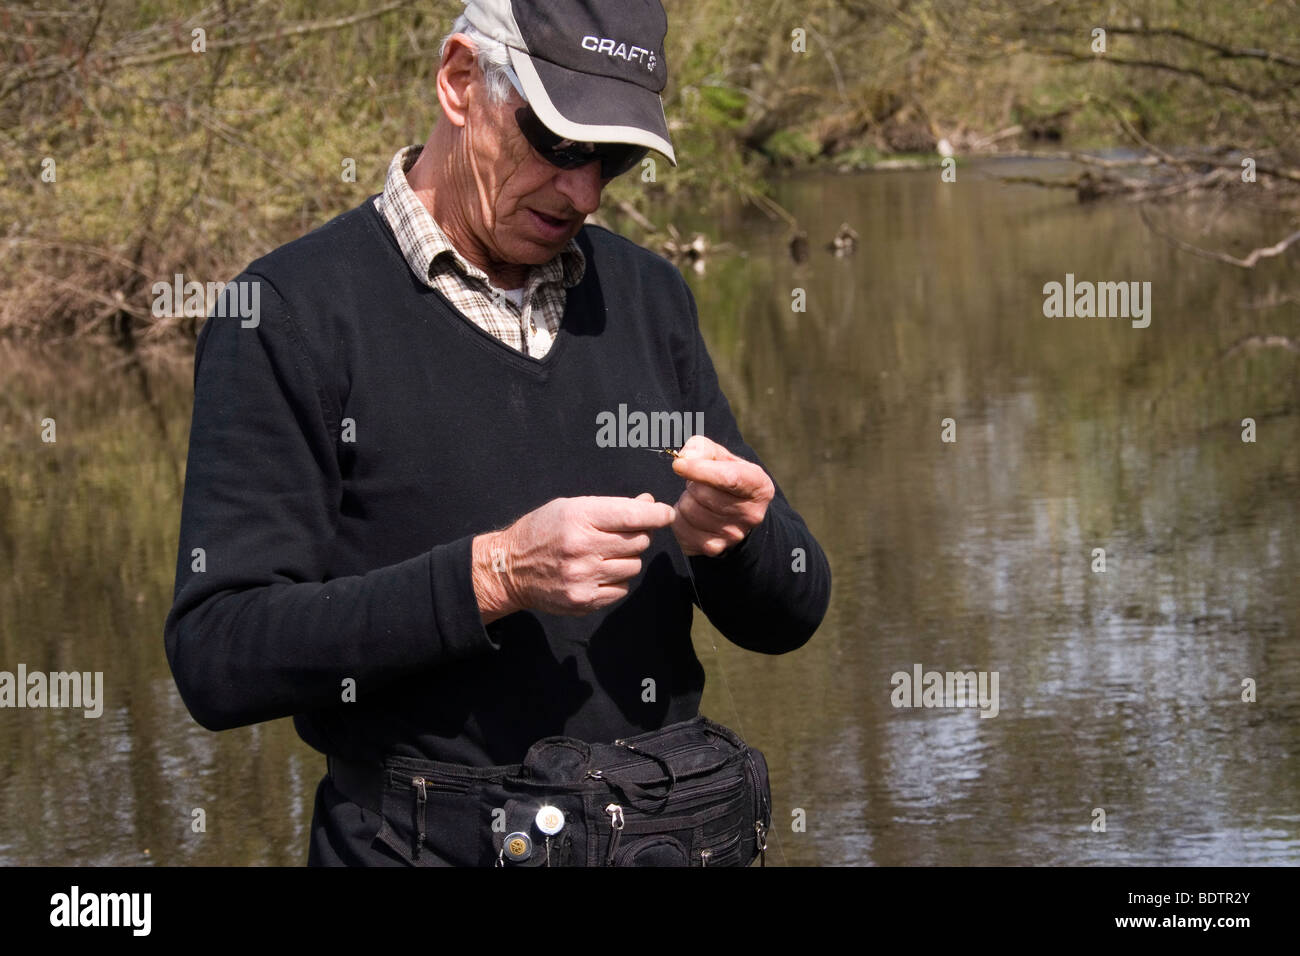 fly-fischer, fly-fisching, bait, germany - Stock Image